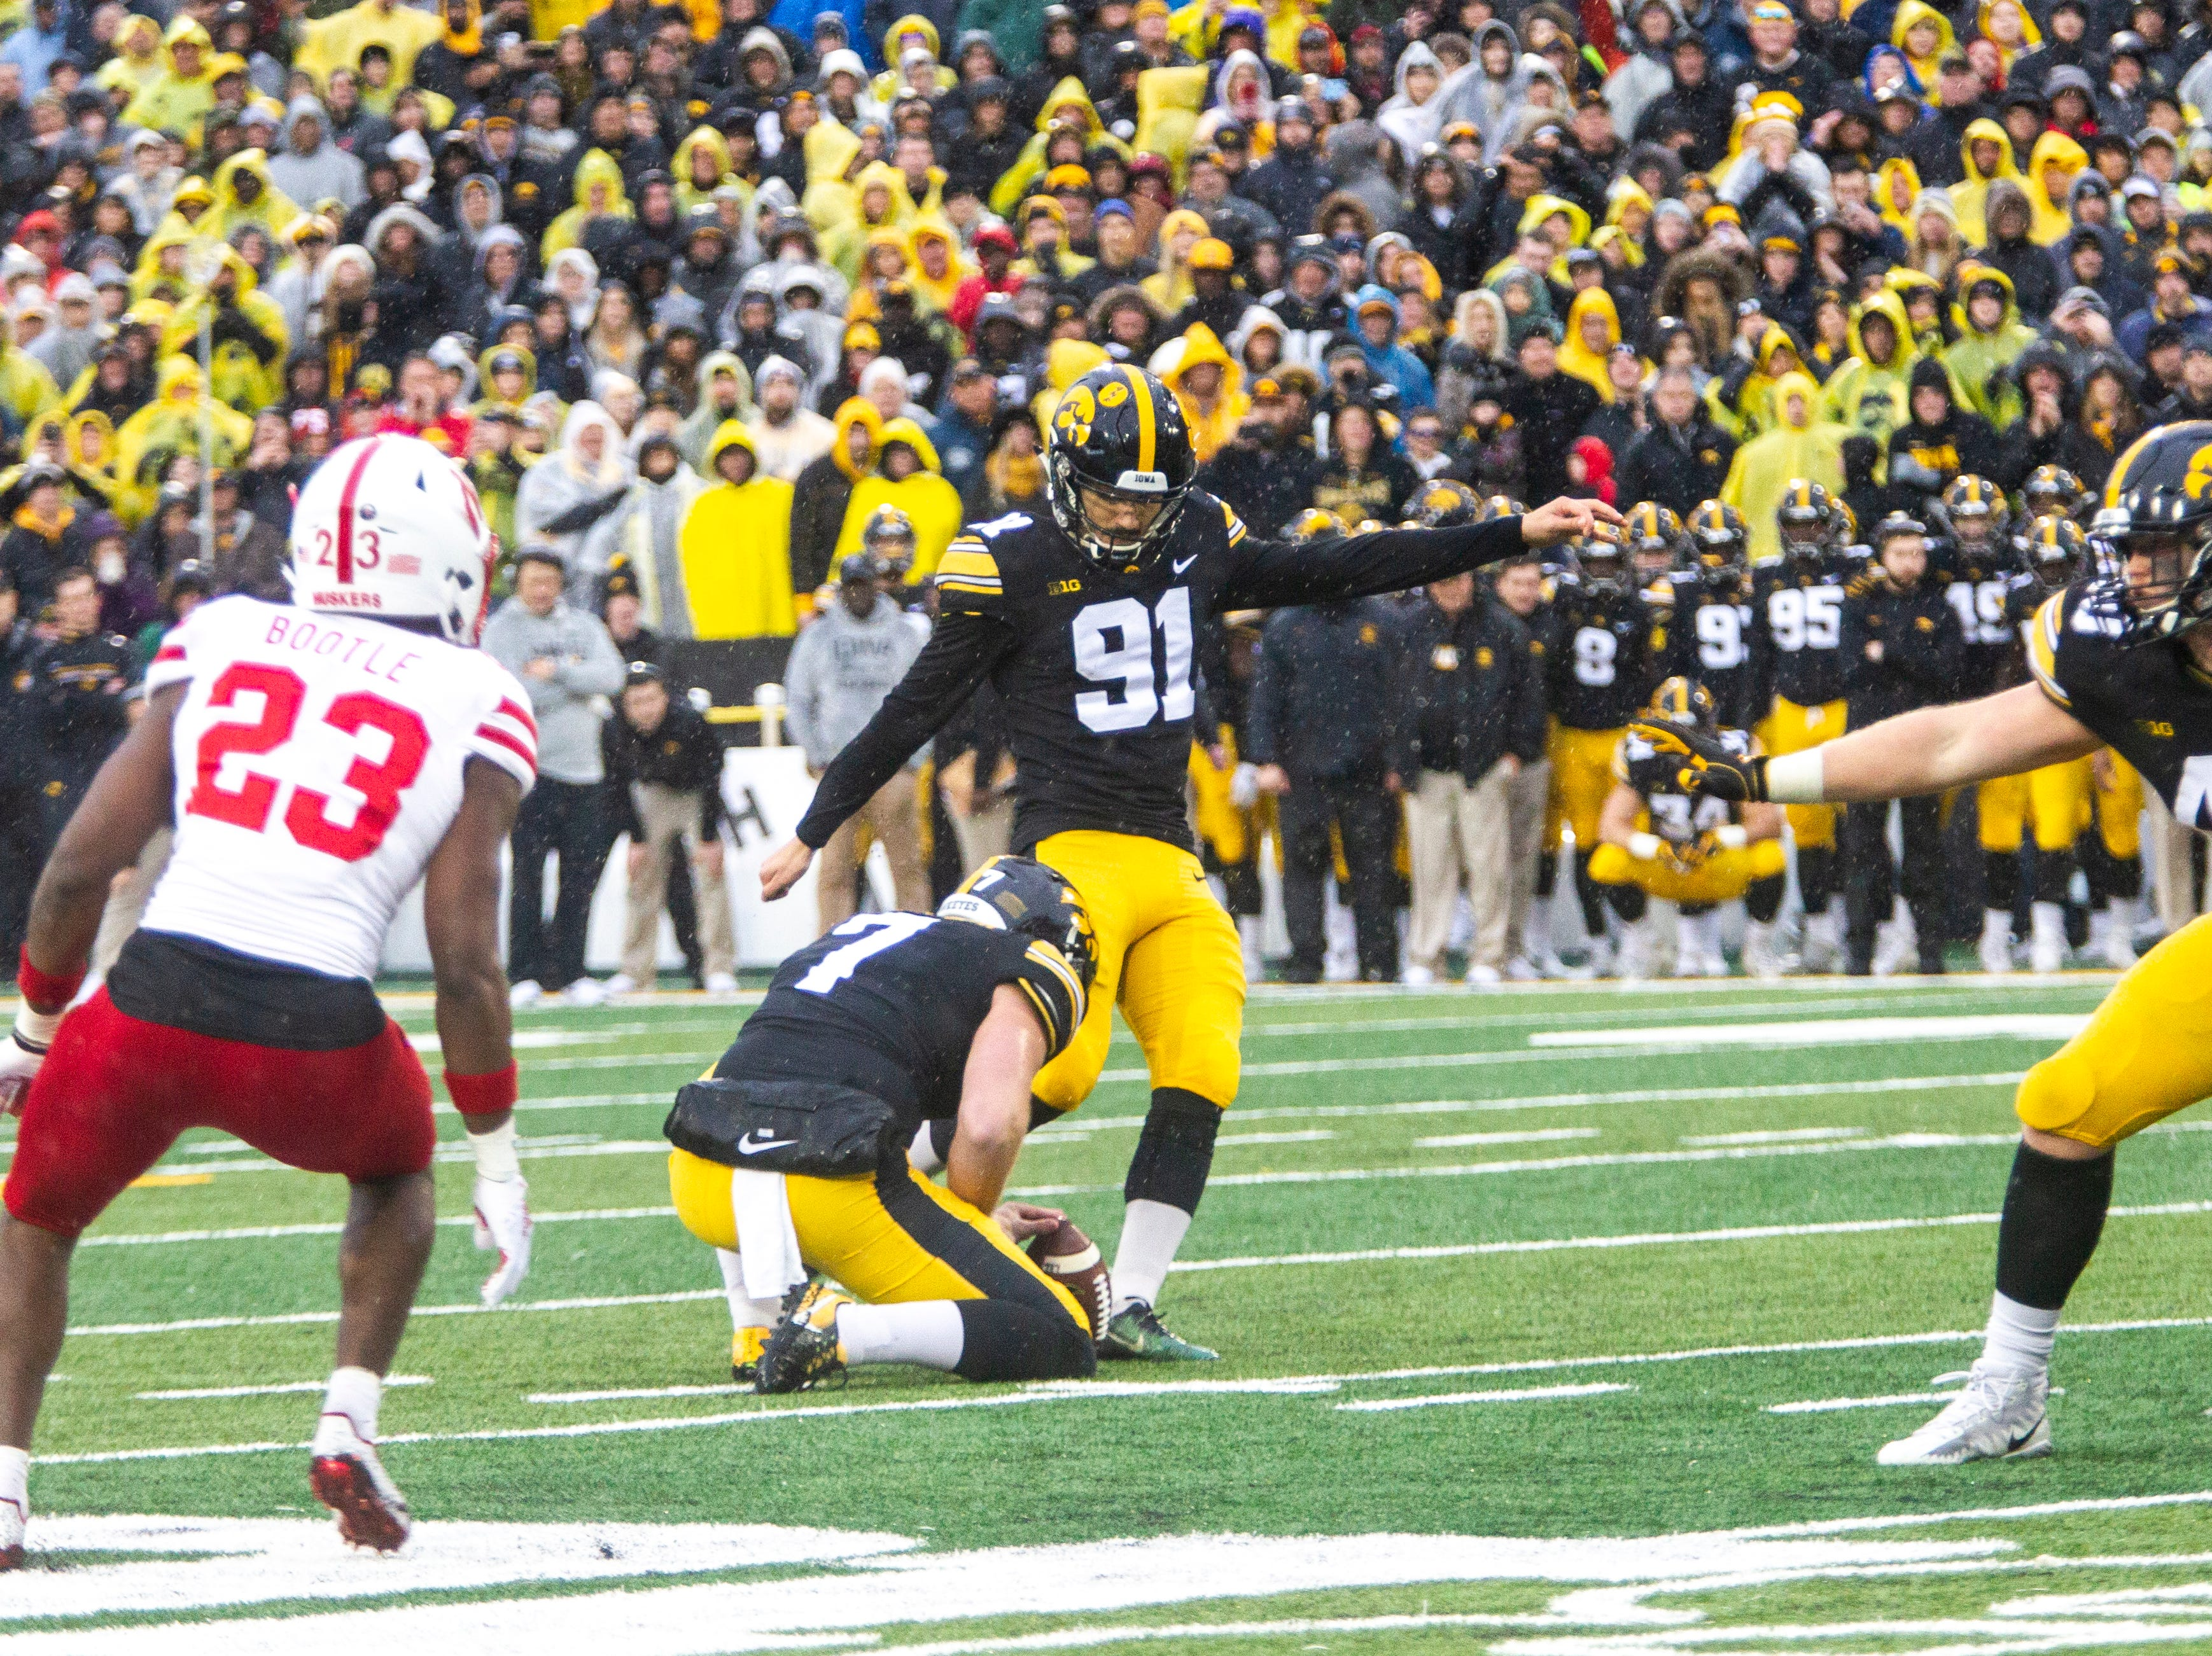 Iowa placekicker Miguel Recinos (91) kicks a game winning field goal during a Big Ten Conference NCAA football game on Friday, Nov. 23, 2018, at Kinnick Stadium in Iowa City.